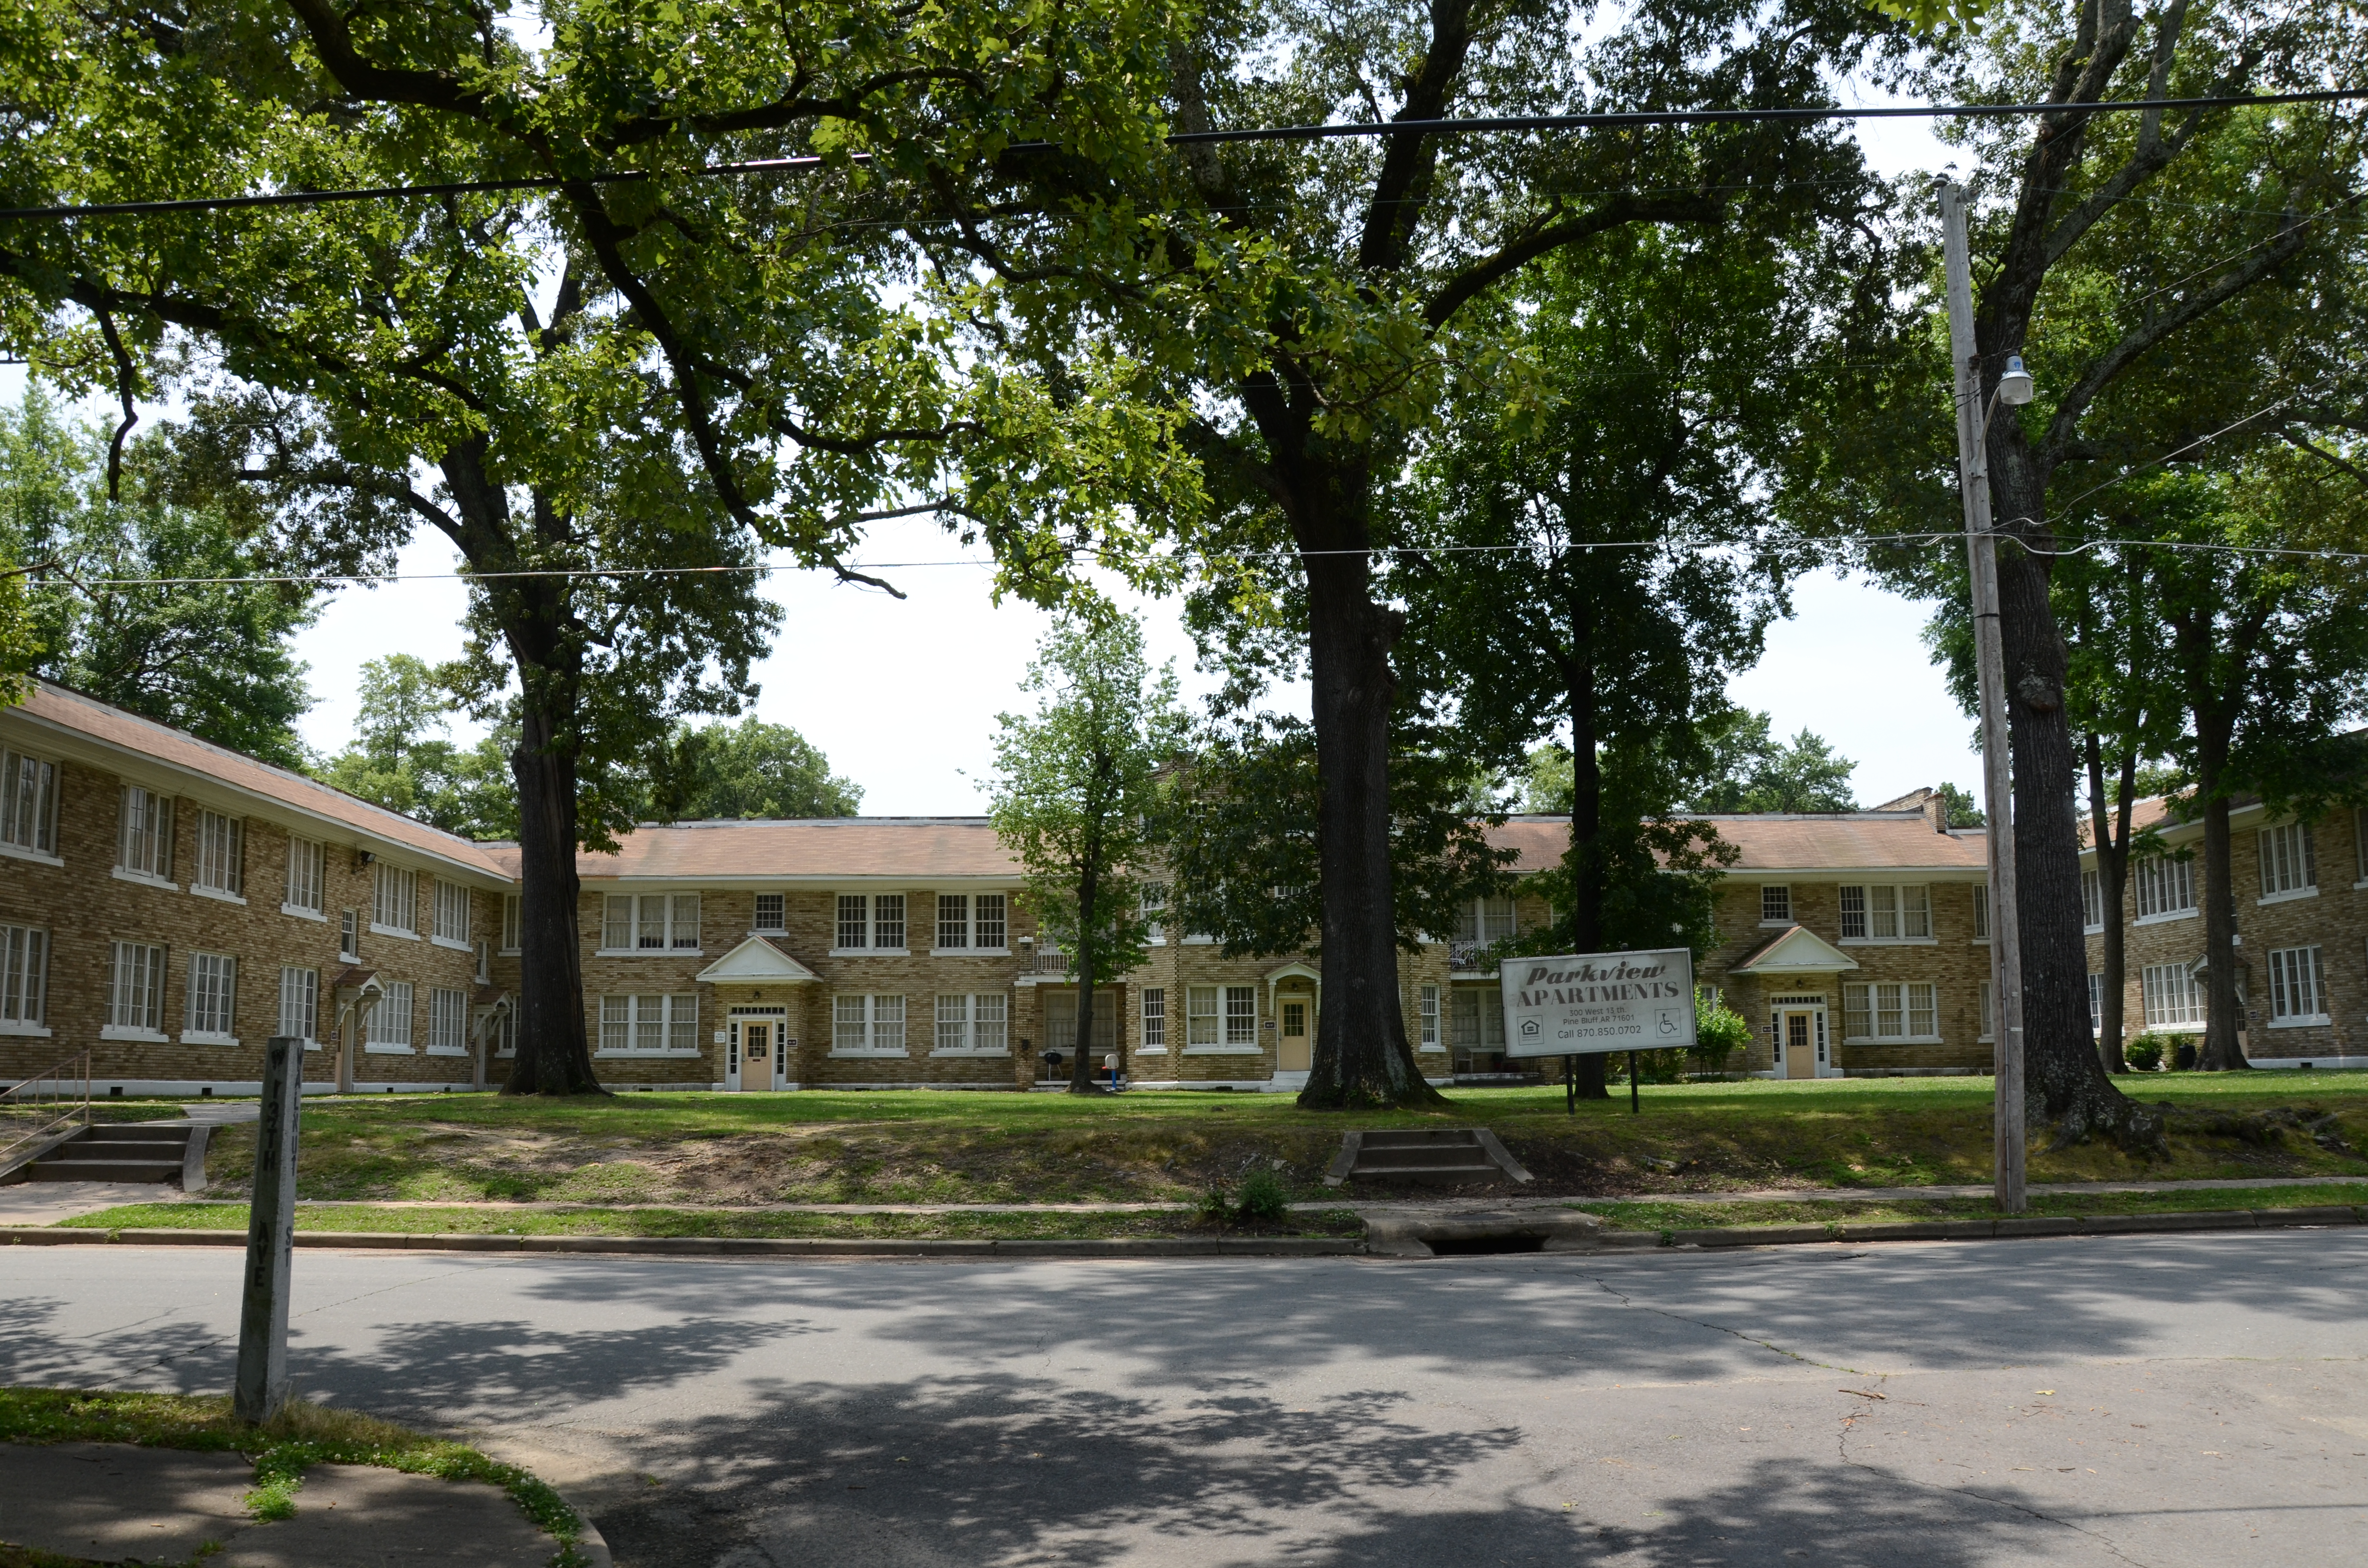 Parkview Apartments (Pine Bluff, Arkansas) - Wikipedia